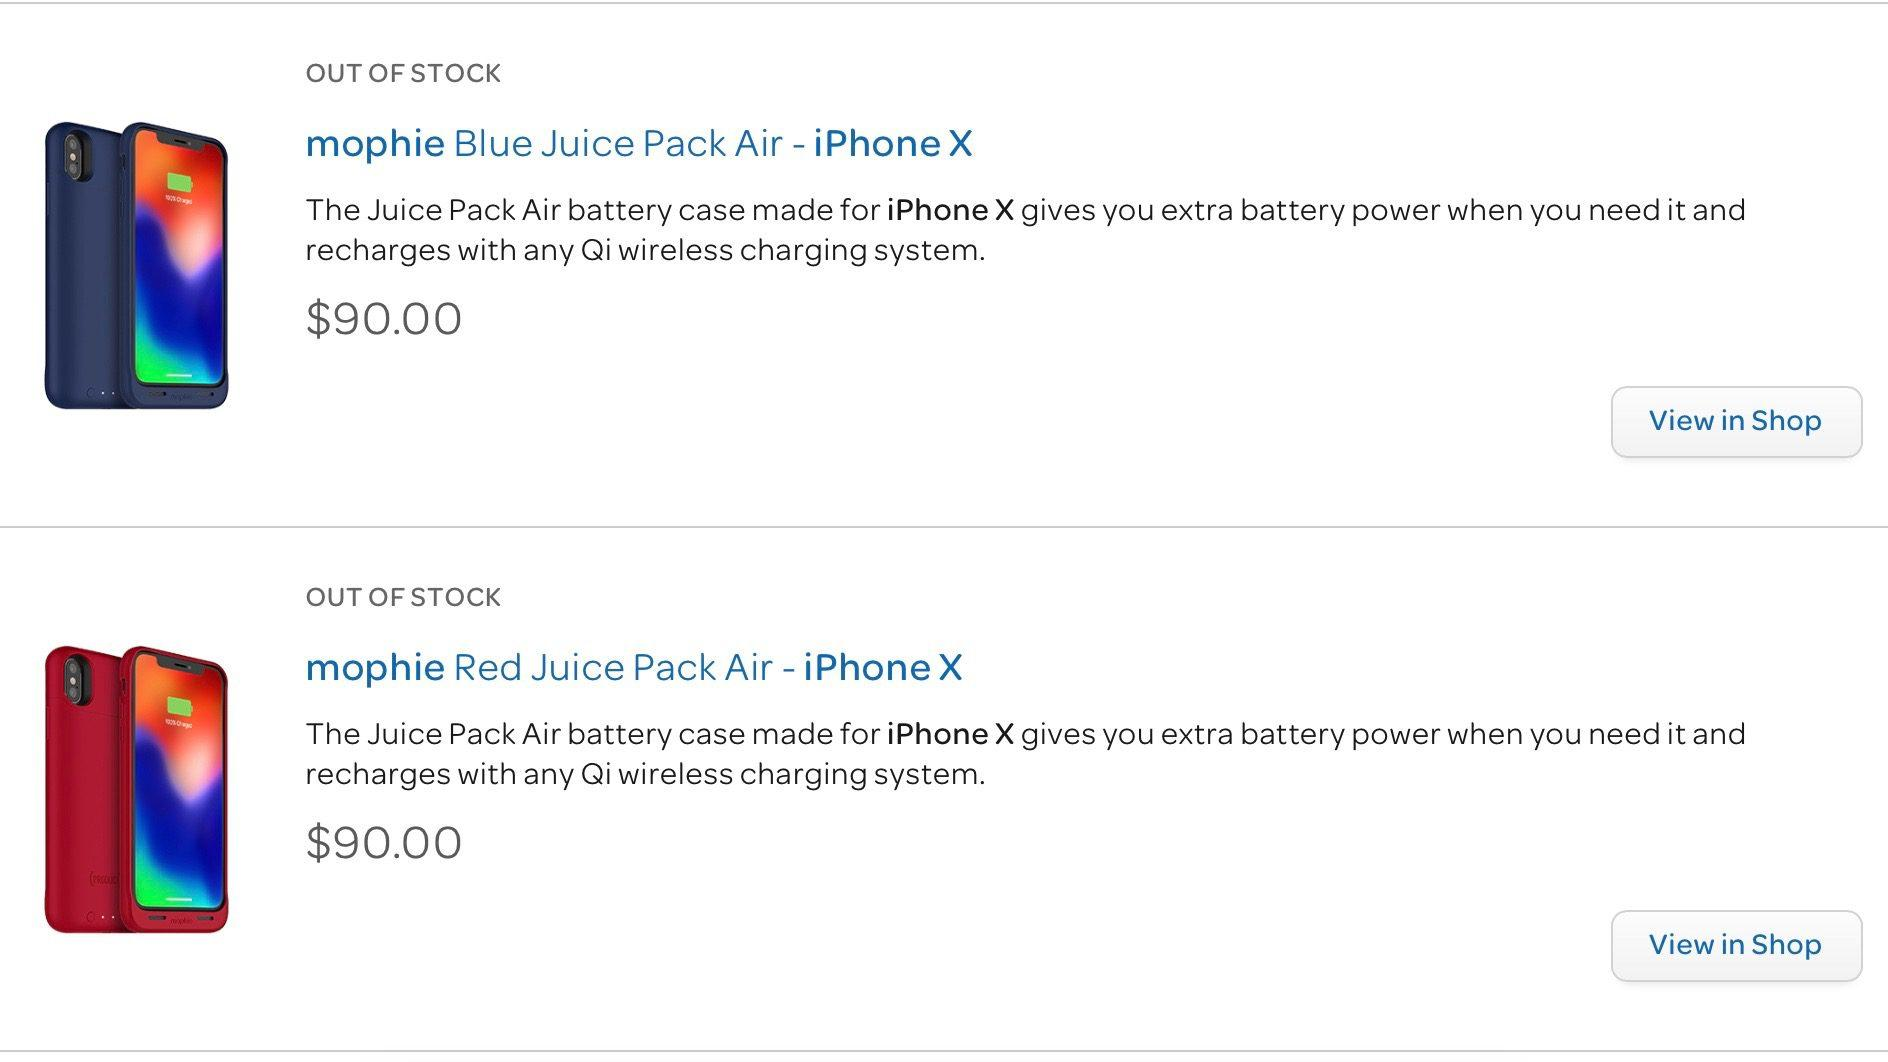 mophie-juice-pack-air-for-iphone-x